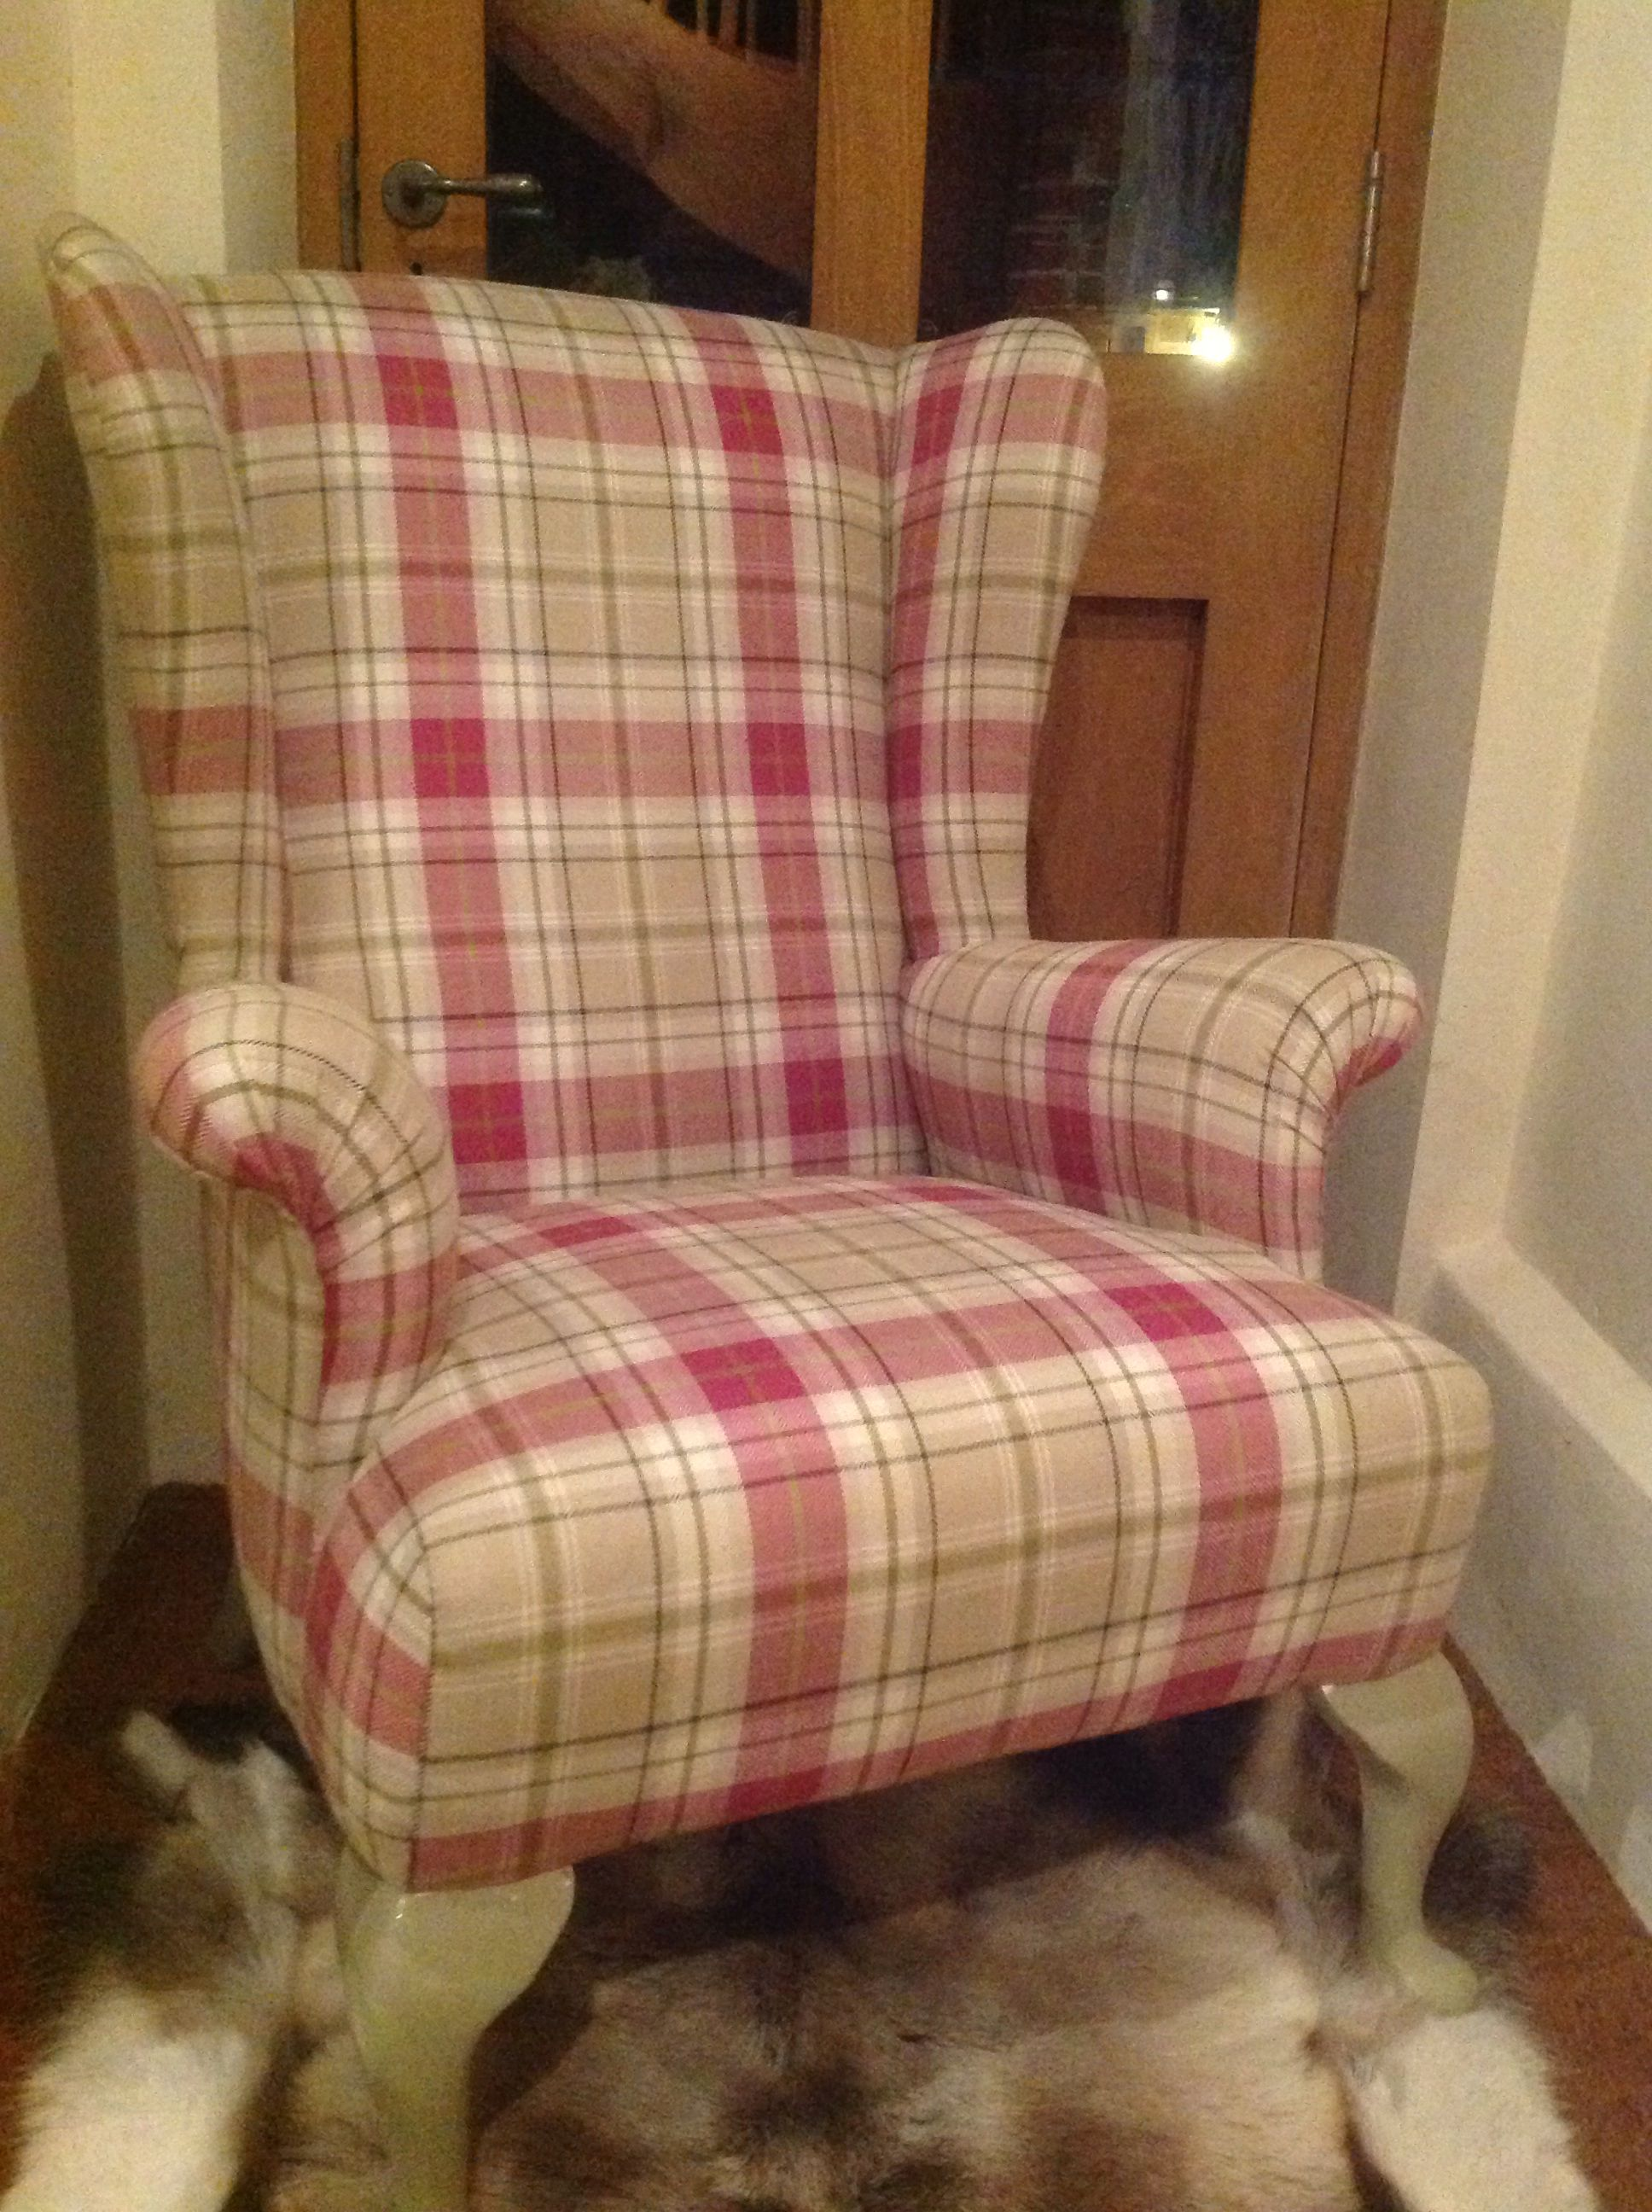 Parker knoll reupholstered in pink and green tartan fabric